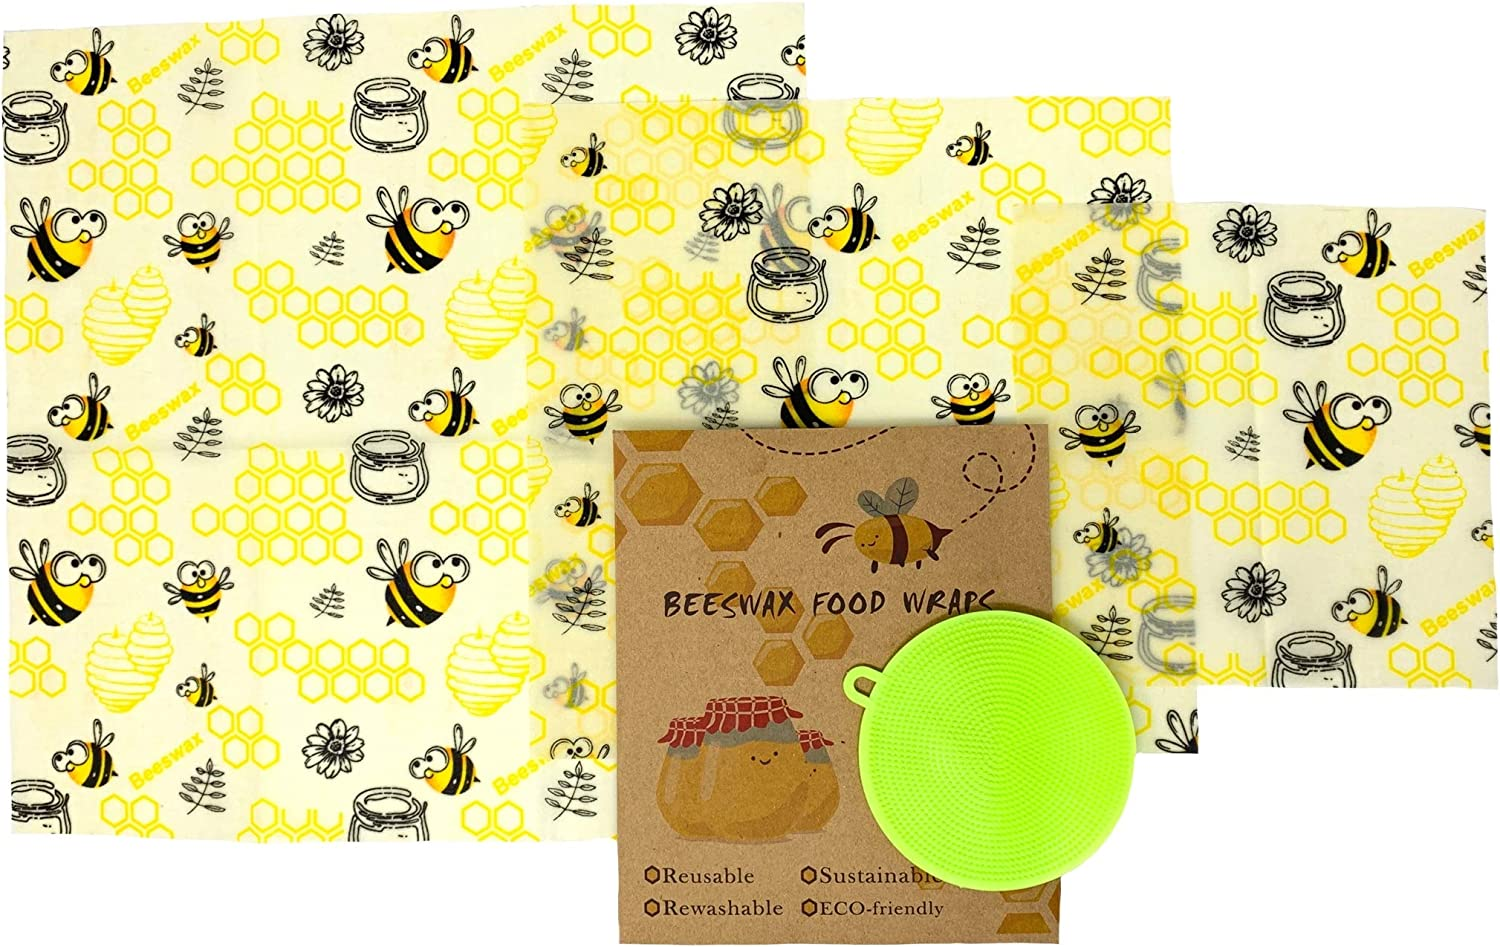 Beeswax Reusable Food Wraps w/Free Produce Scrubber - 3 Sizes - Nature's Solution to Plastic Food Wrap Alternatives - Fresher, Longer, Portable, Washable by Rich Rose Supply Co. (Honey Bees)